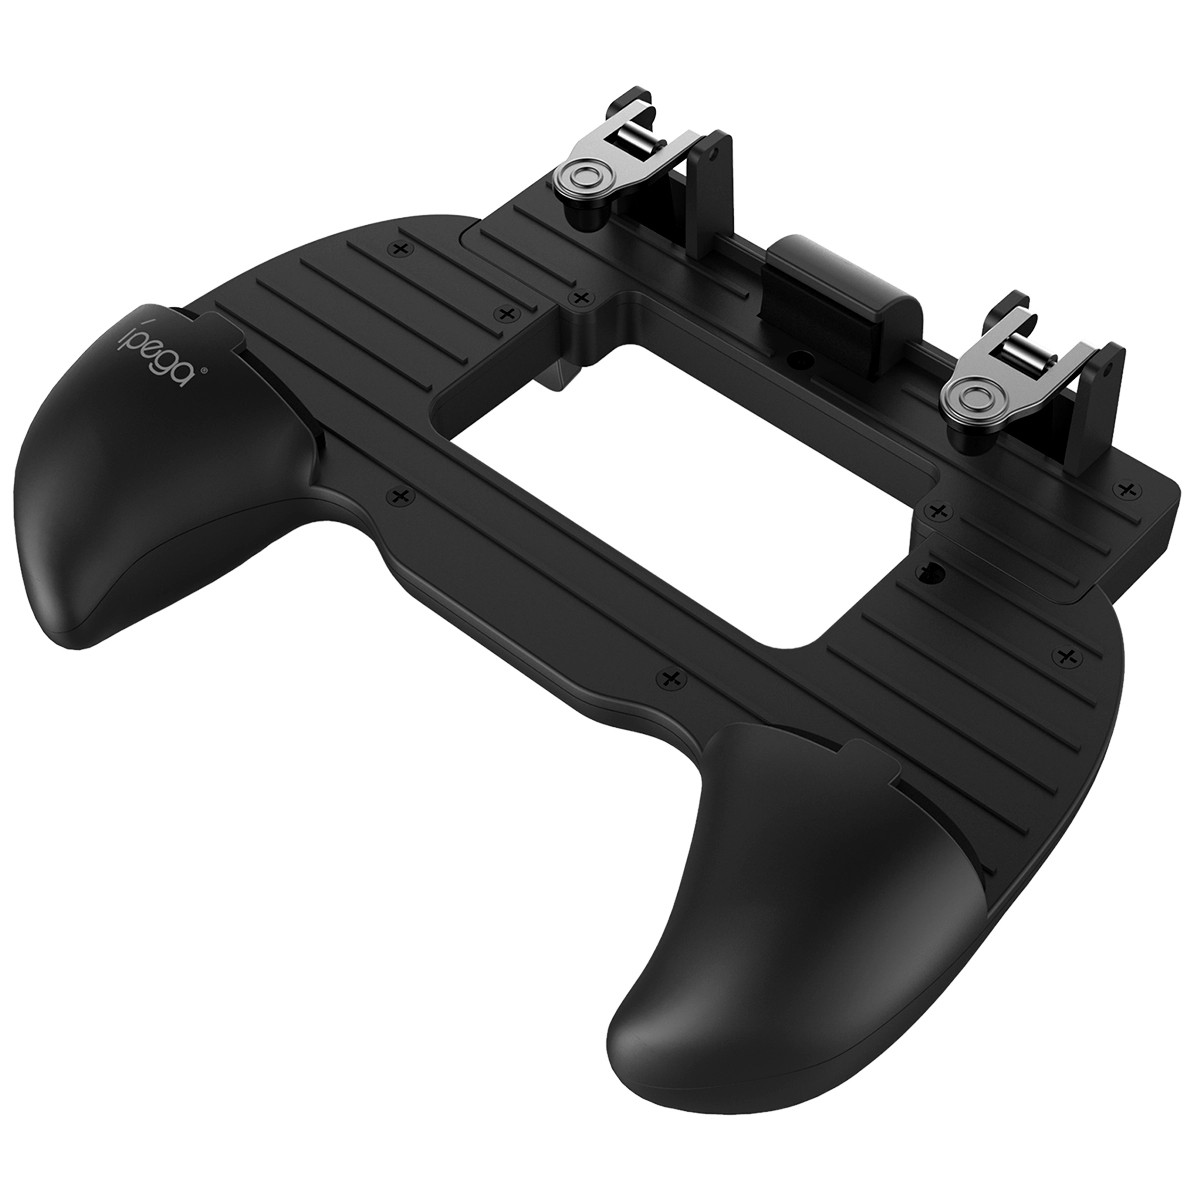 Ipega Pg 9117 Gamepad Design For Fps Pubg Mobile Phone Game Grip (6)